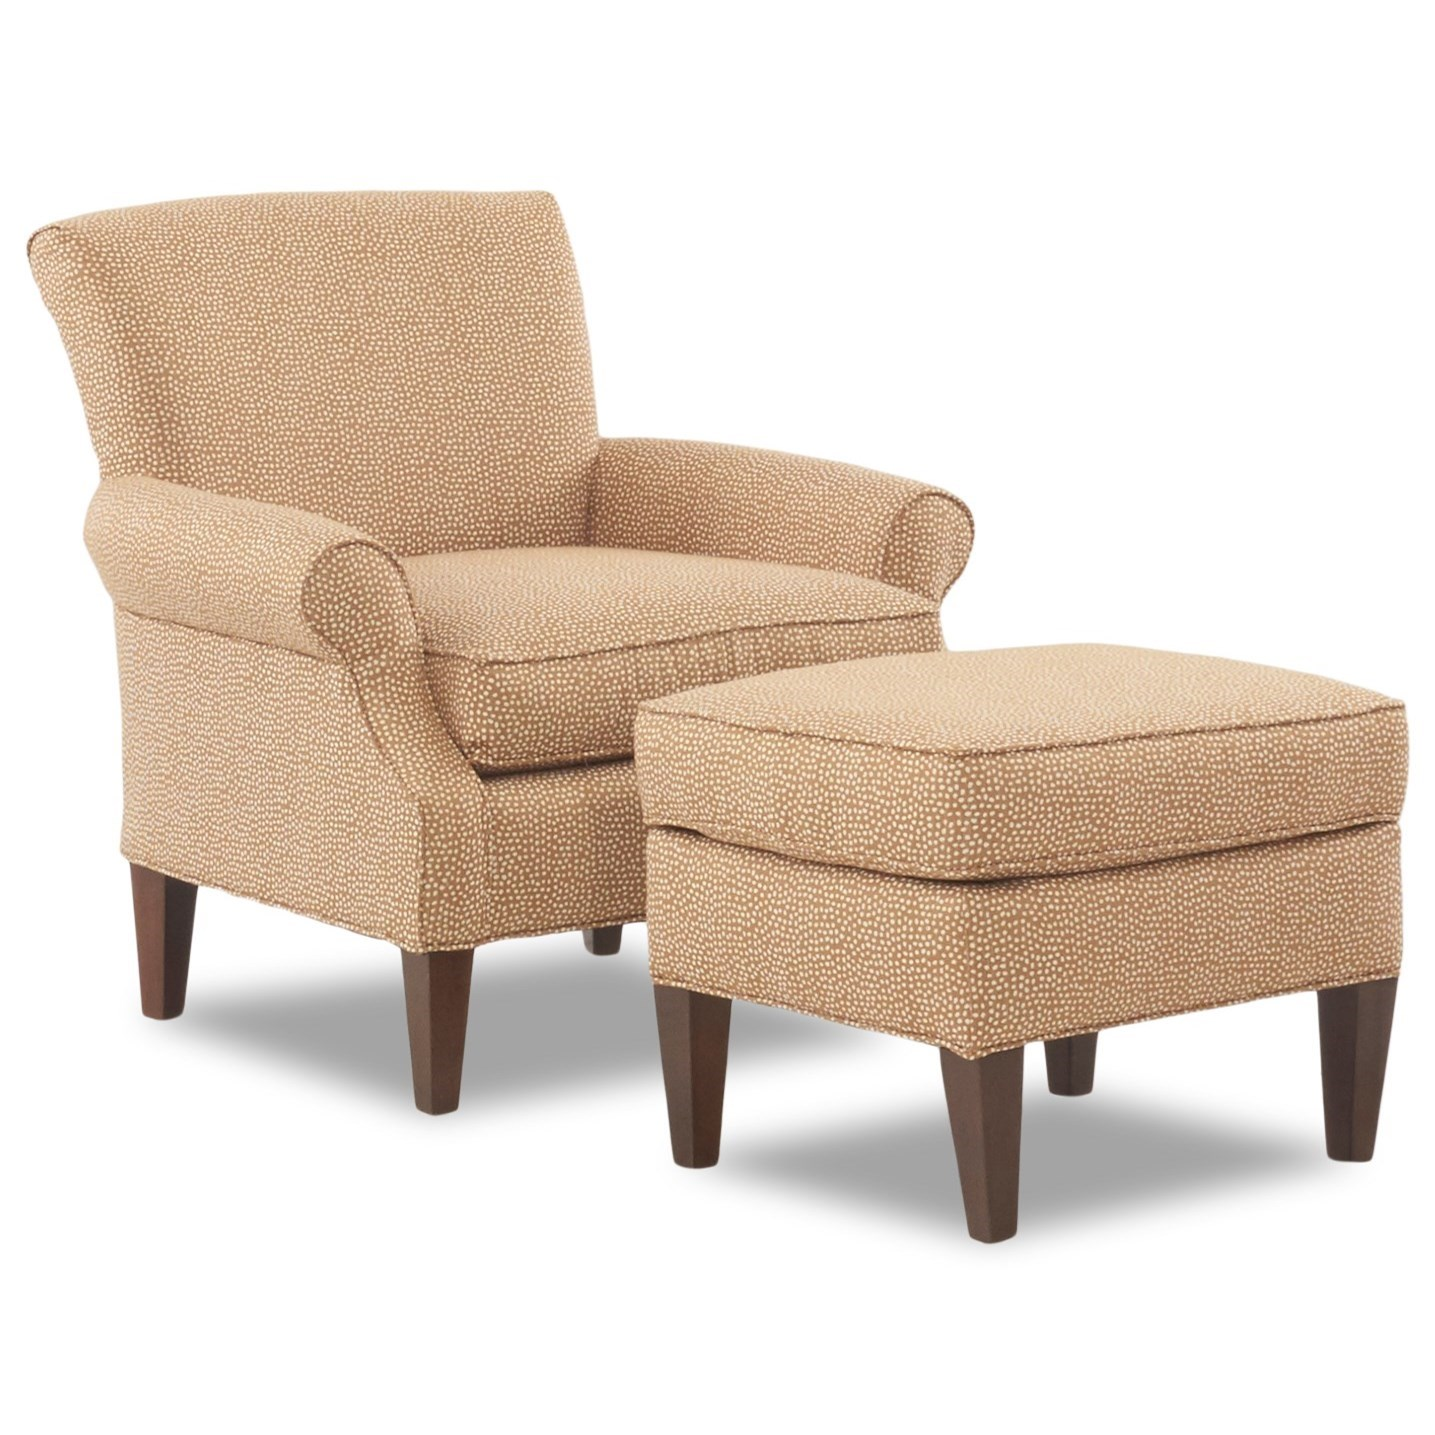 Chair Ottoman Chairs And Accents Chair Ottoman Set By Klaussner At Efo Furniture Outlet